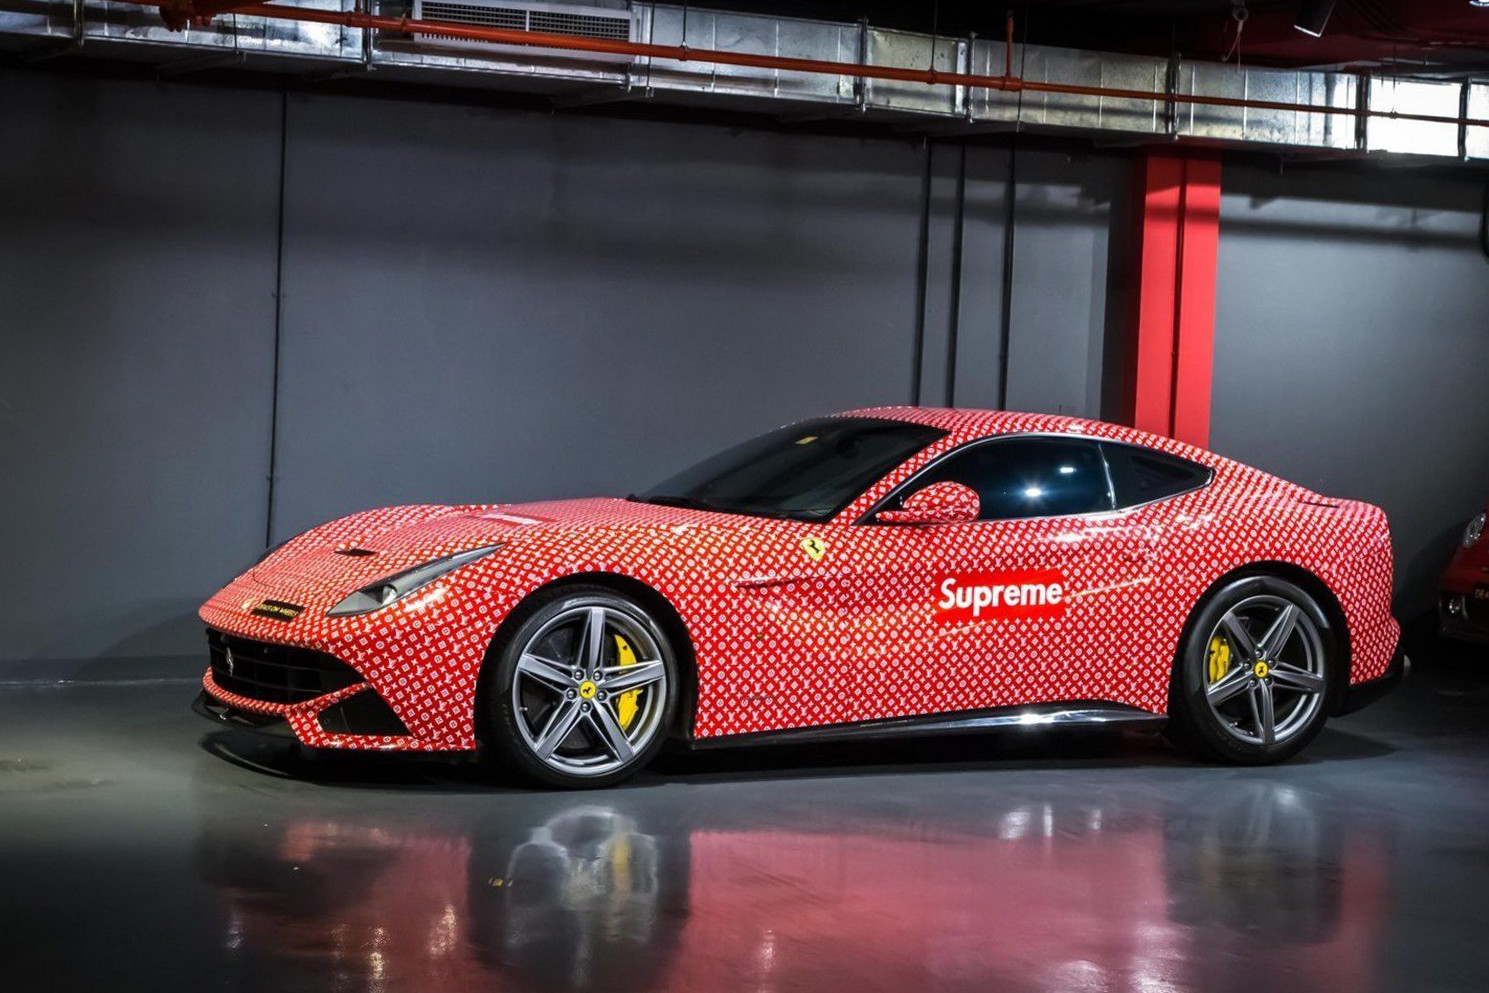 Supreme x Louis Vuitton Ferrari F12 For Sale